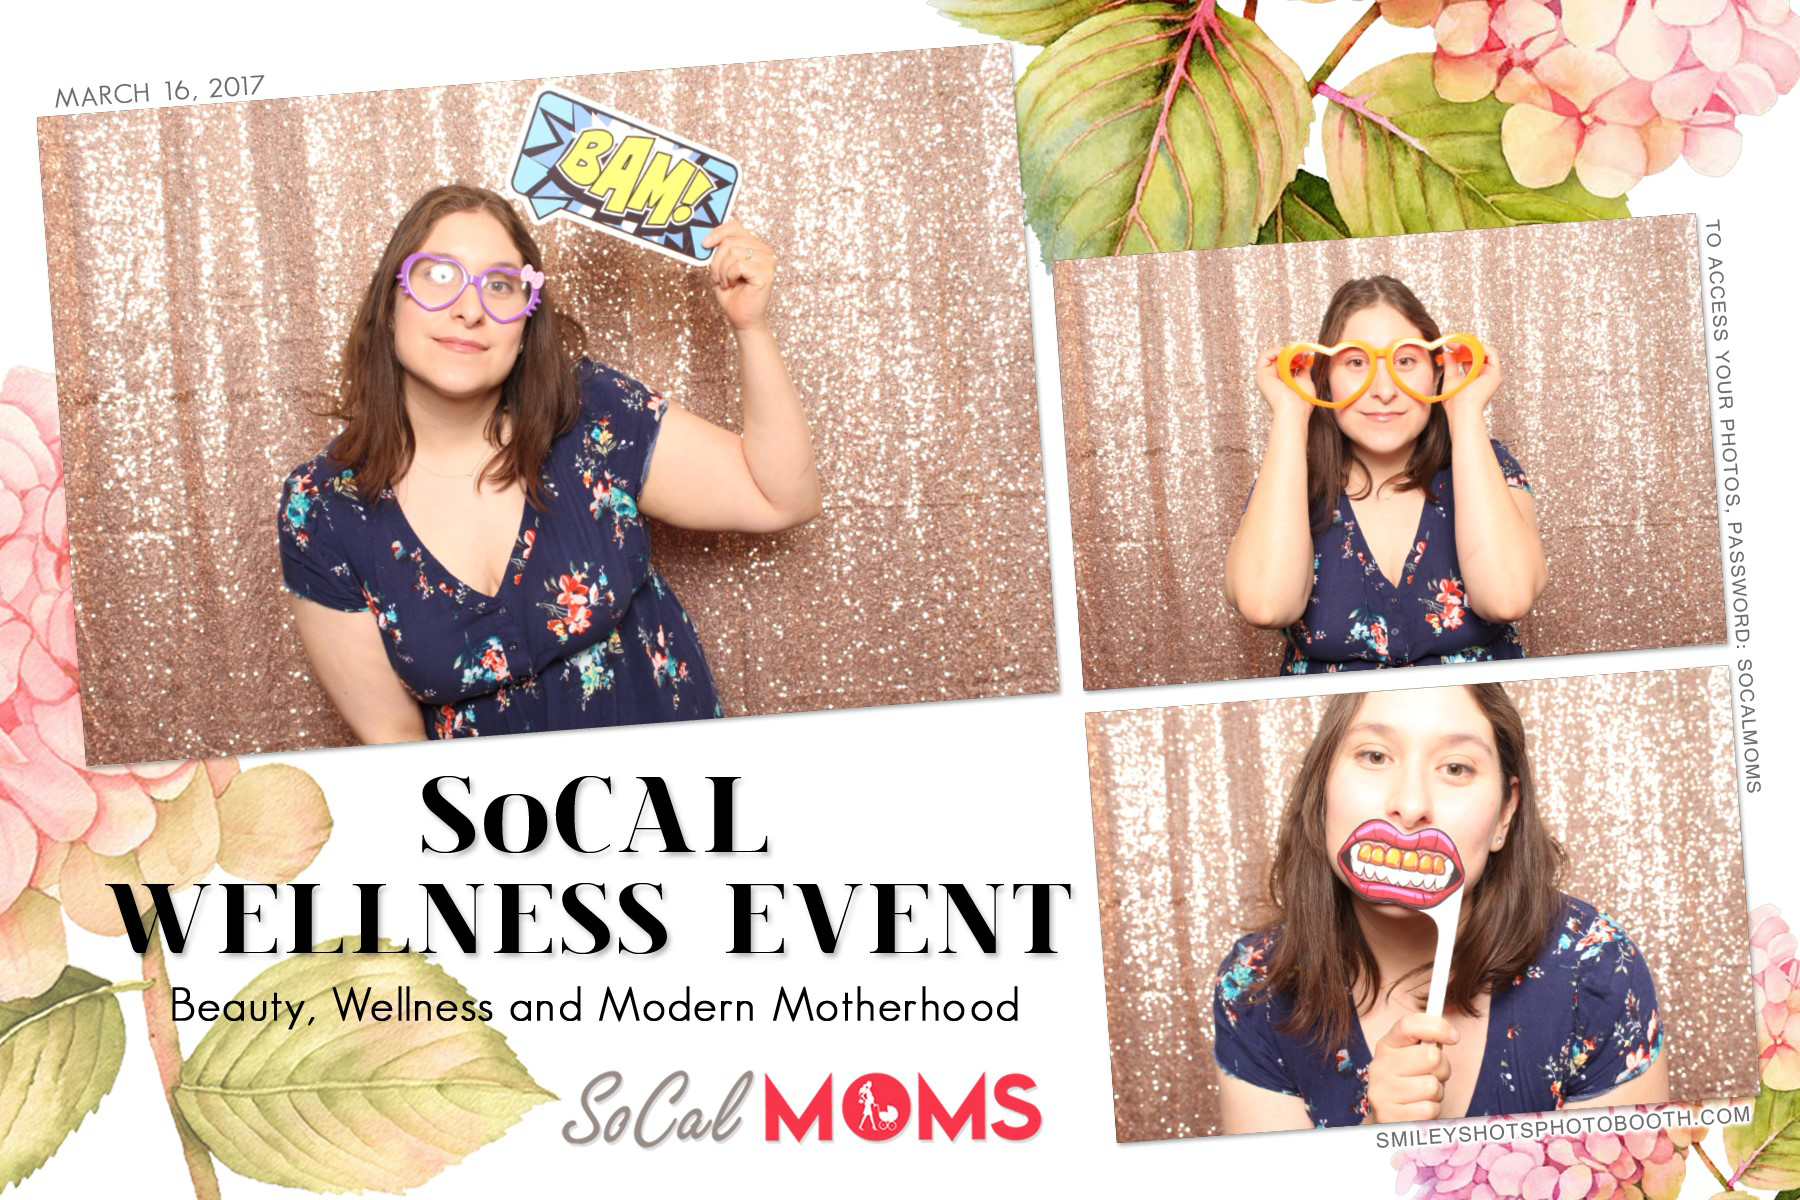 Socal Wellness Event Socal Moms Smiley Shots Photo Booth Photobooth (47).png